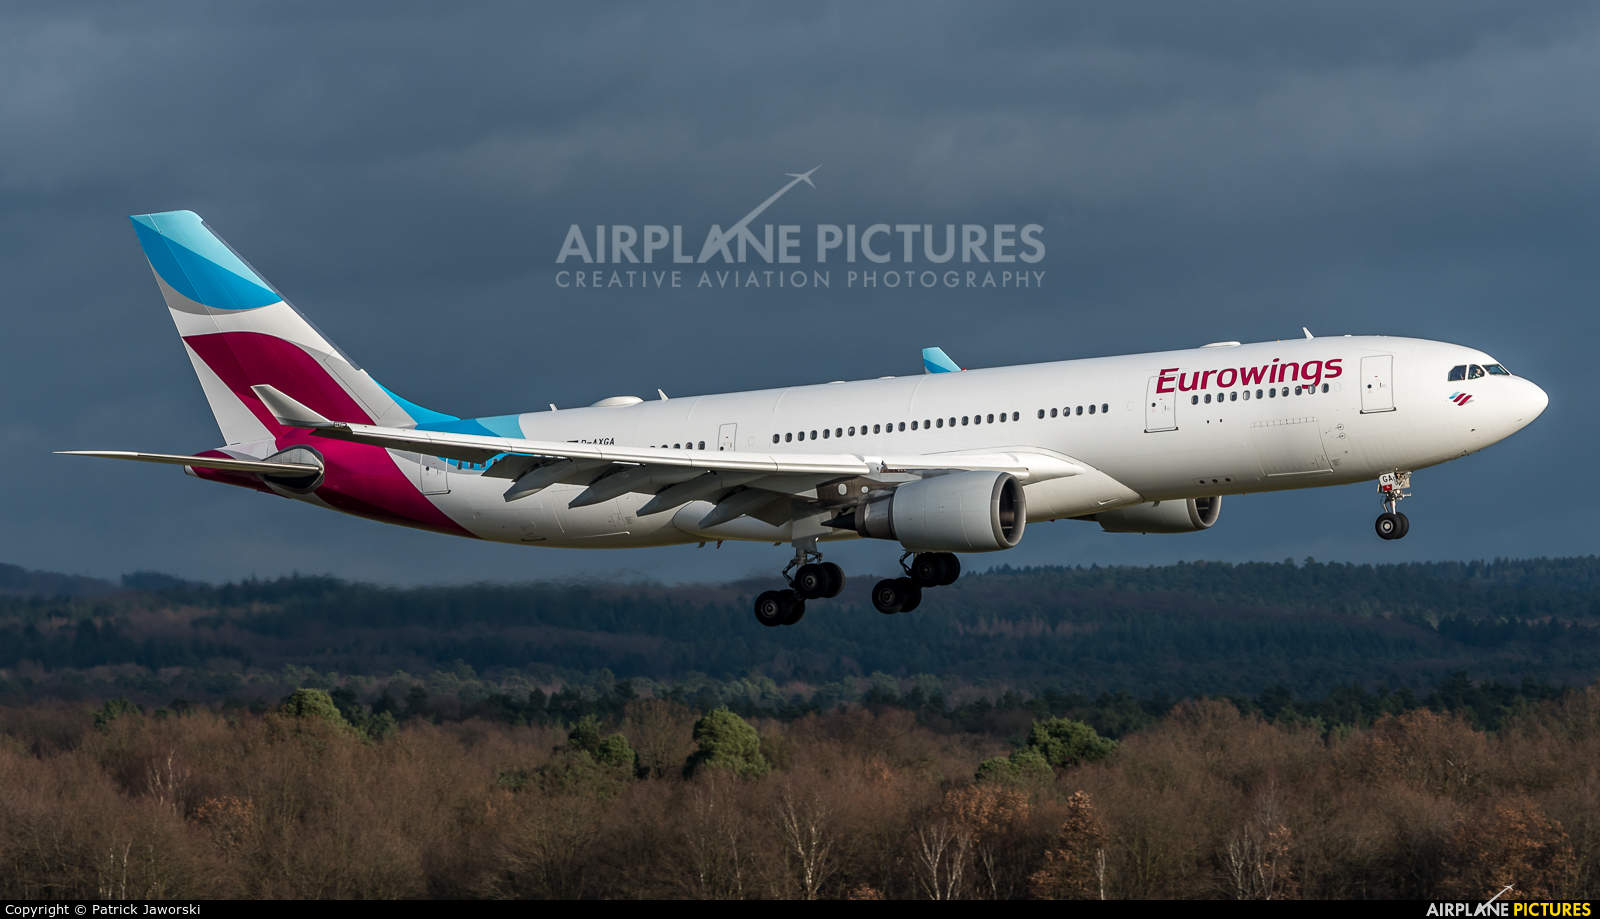 Lufthansa to merge Brussels Airlines and Eurowings?